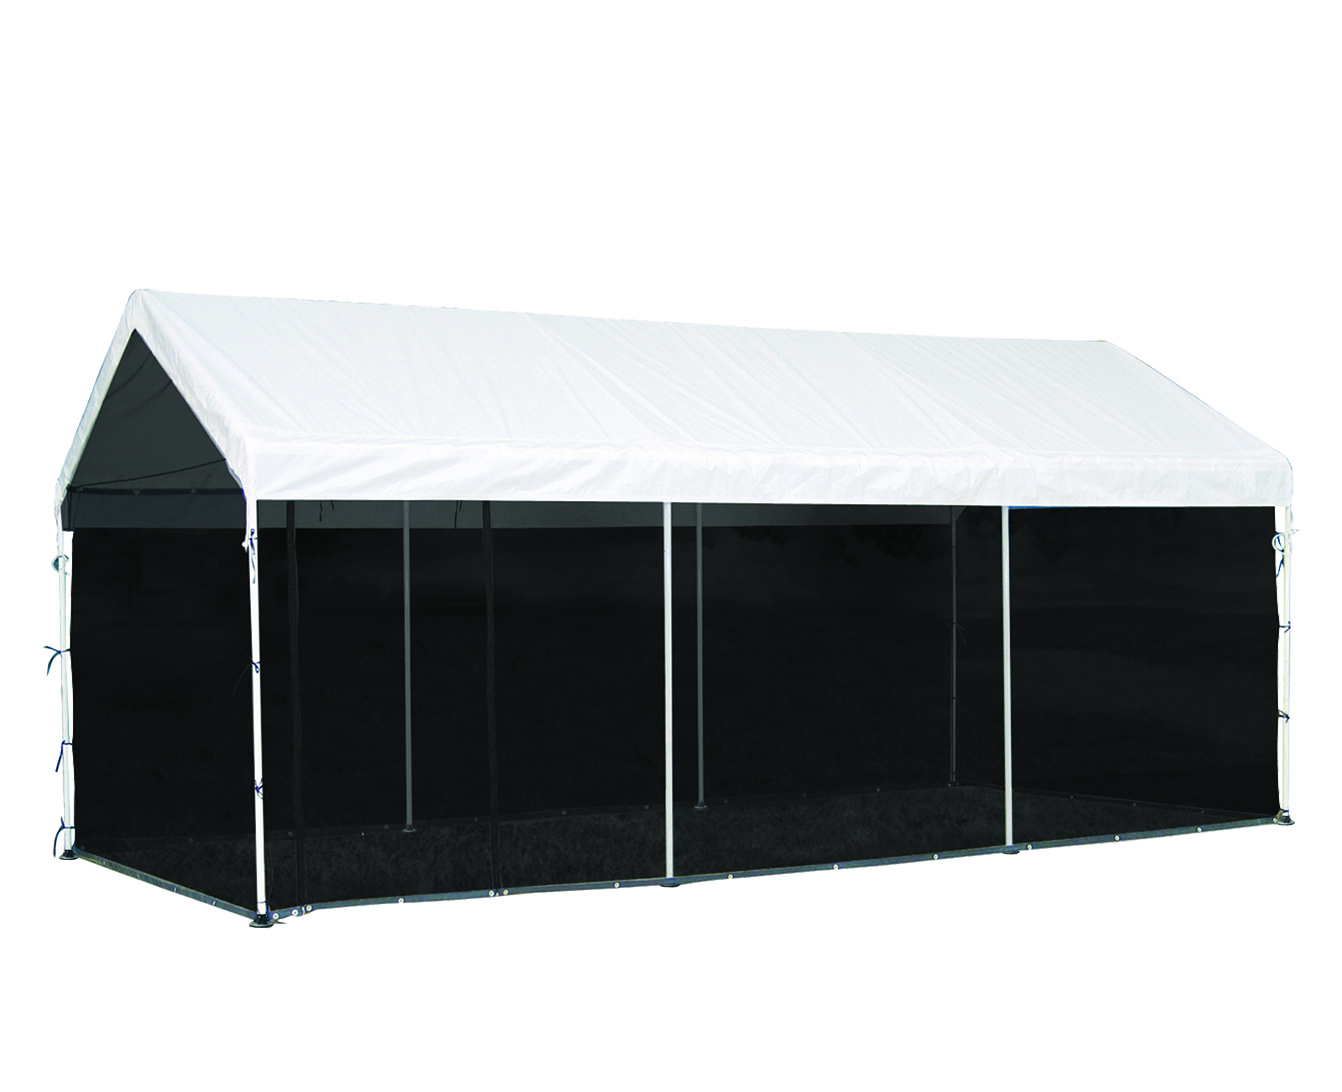 Max AP Canopy, 10'x20', 8-Leg, White Cover, Screen Kit